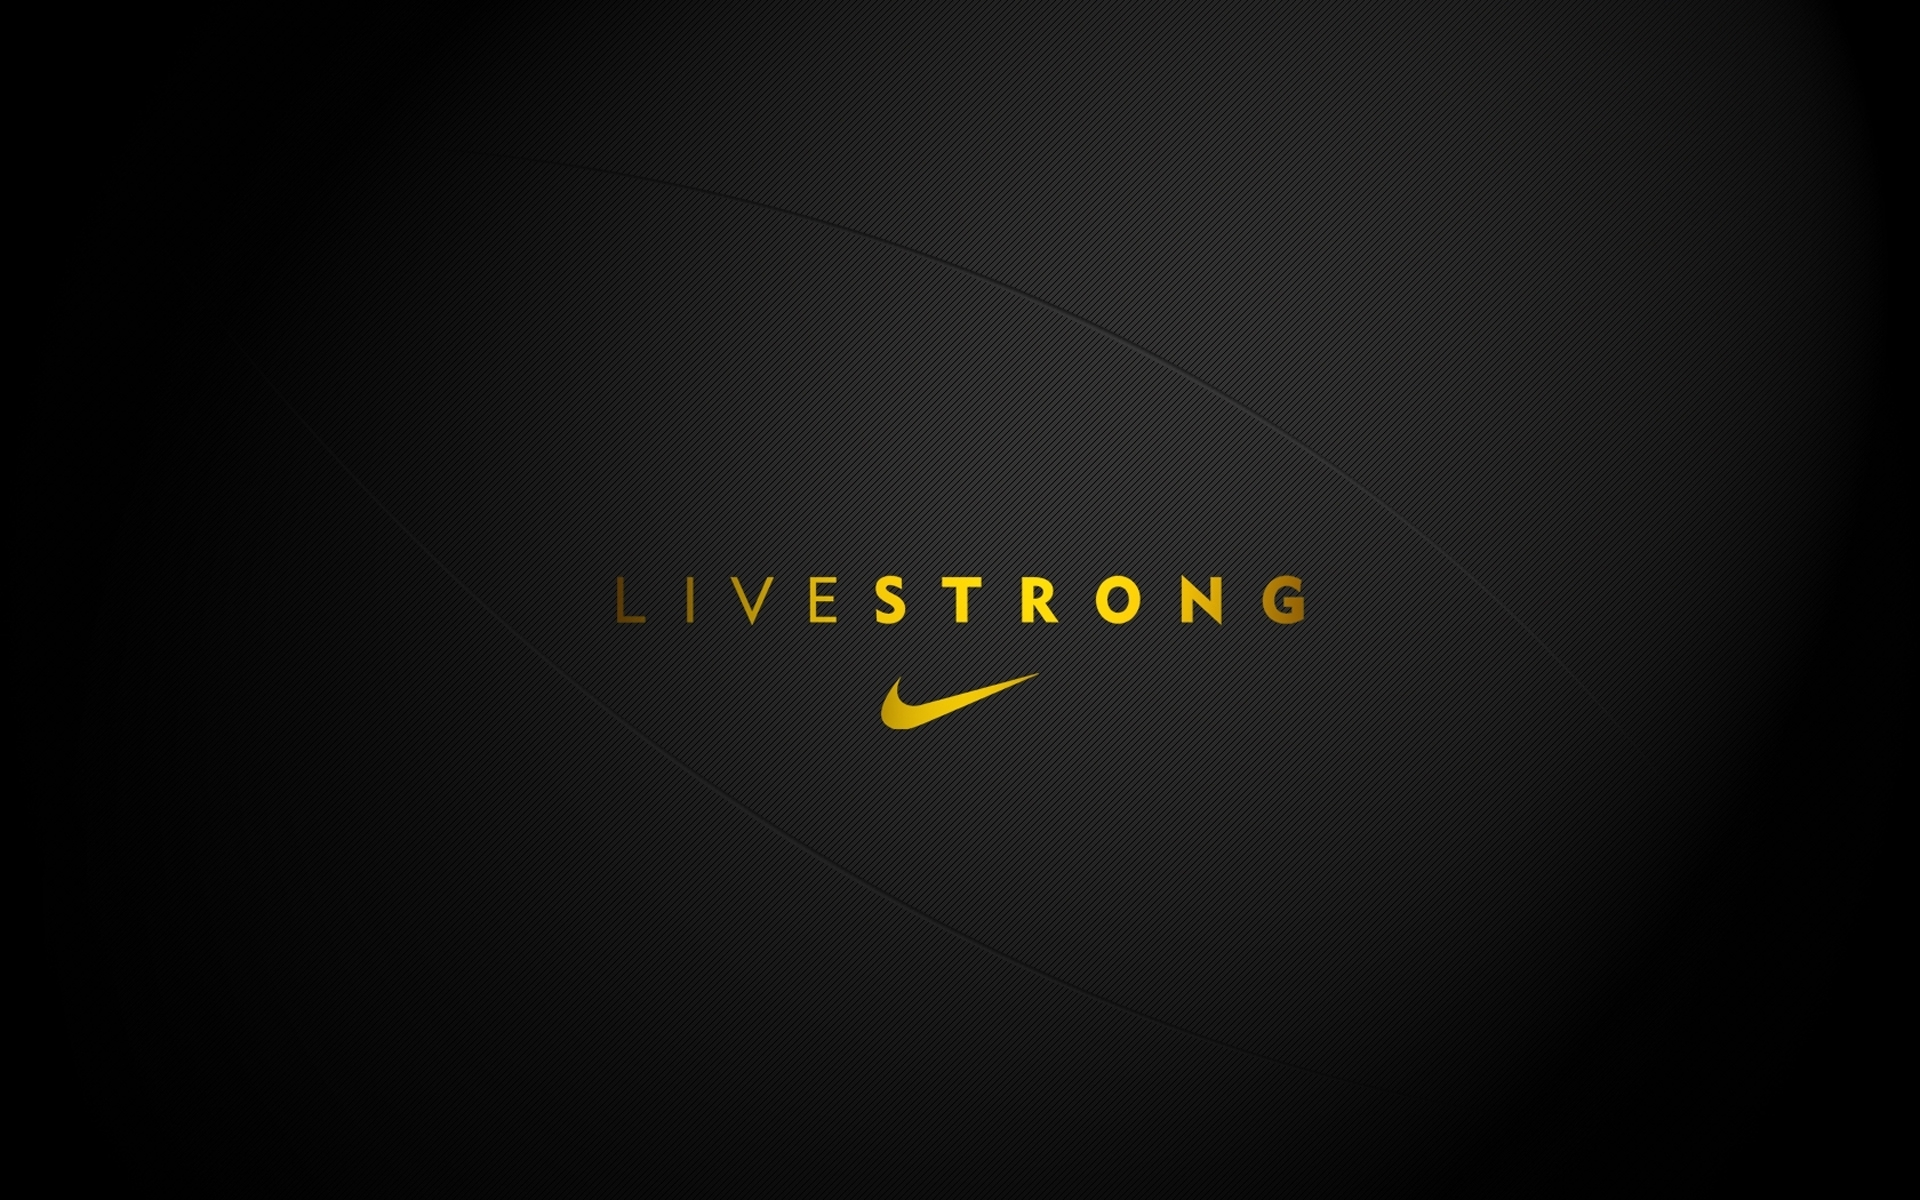 Nike Just Do It Wallpaper 23273 1920x1200 Px